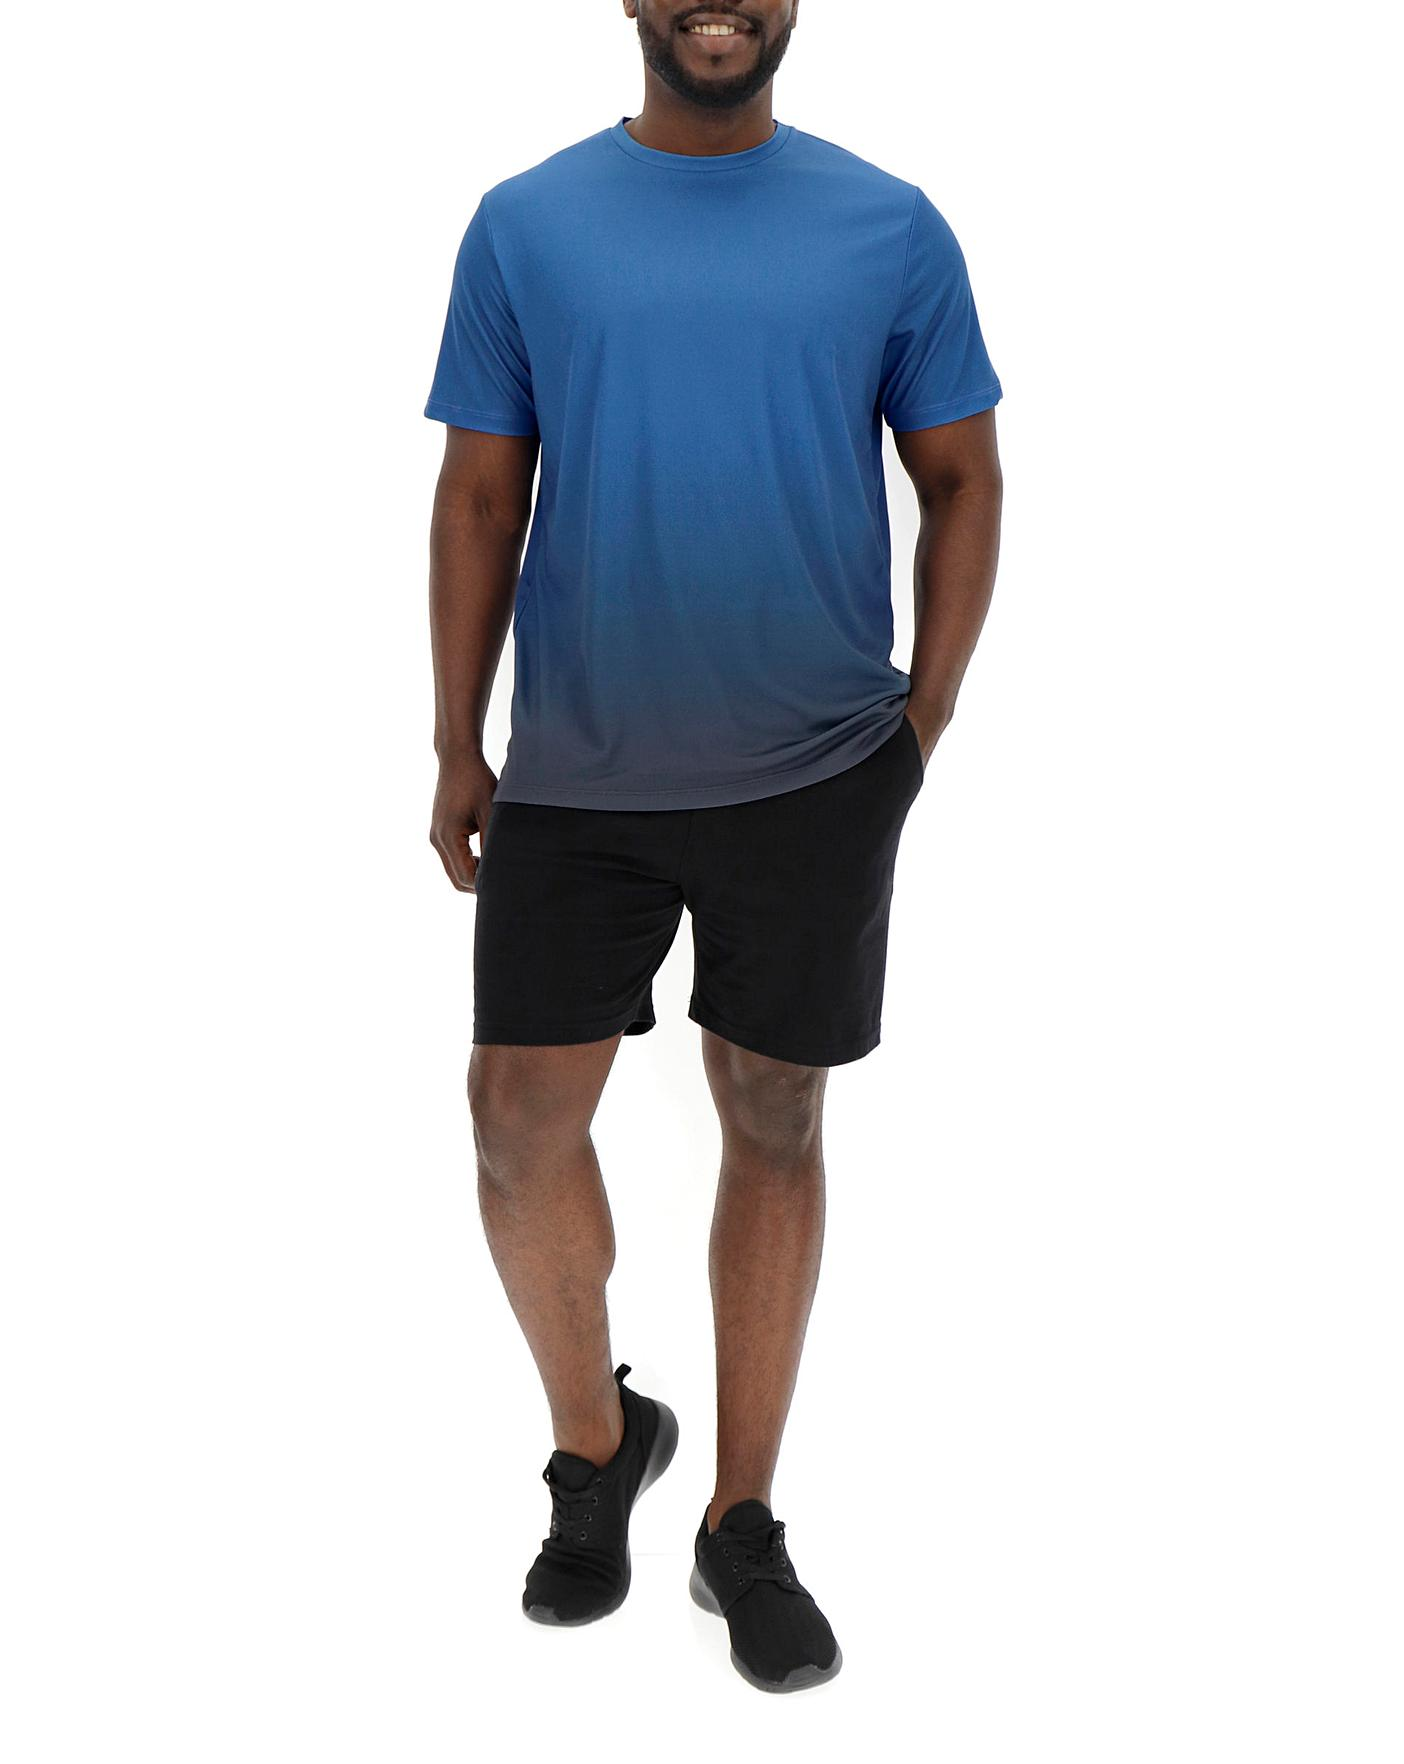 men's lounge shorts faded